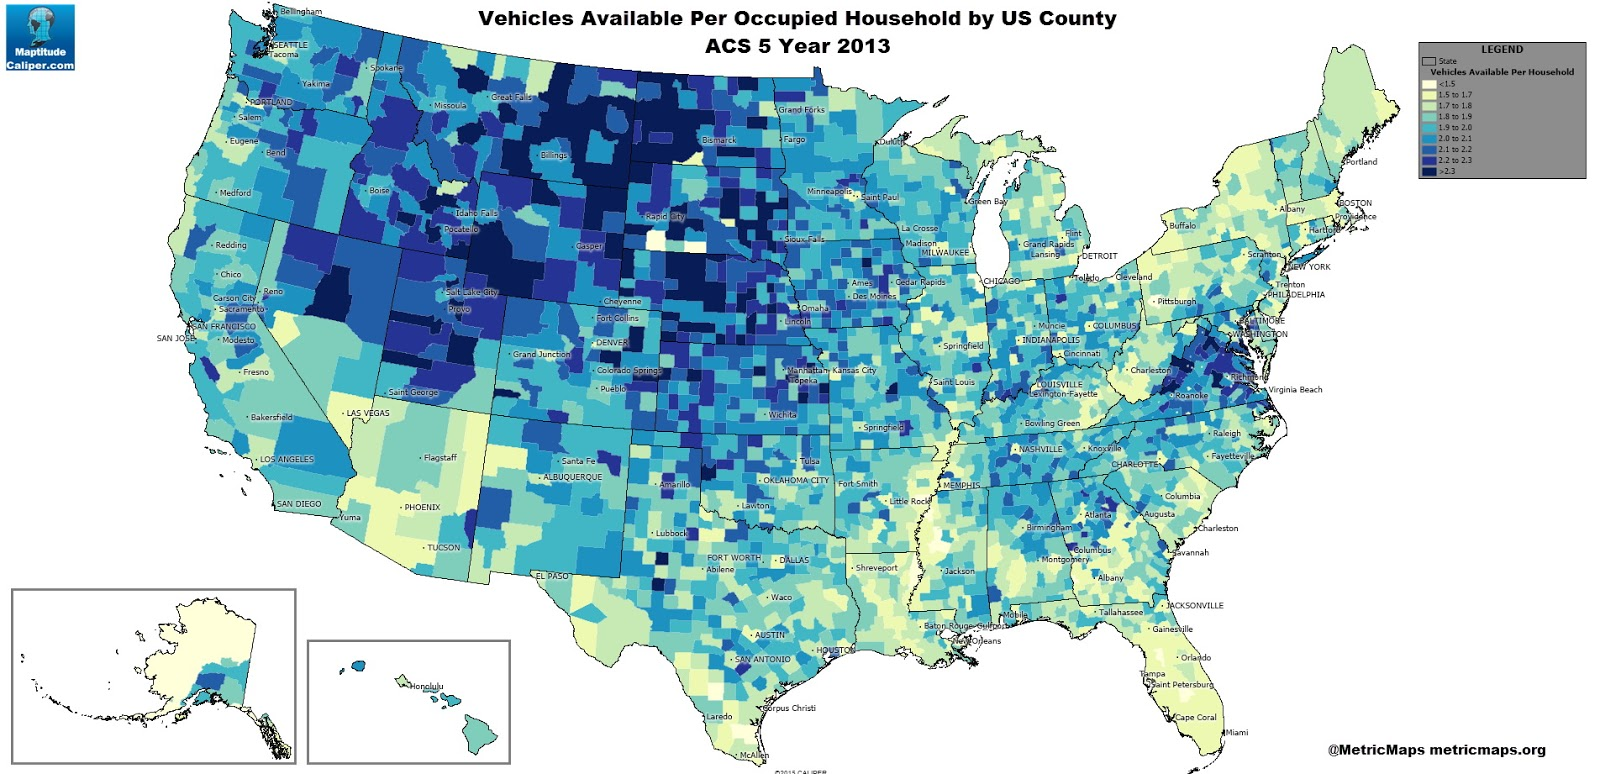 Vehicles available per occupied household by U.S. country